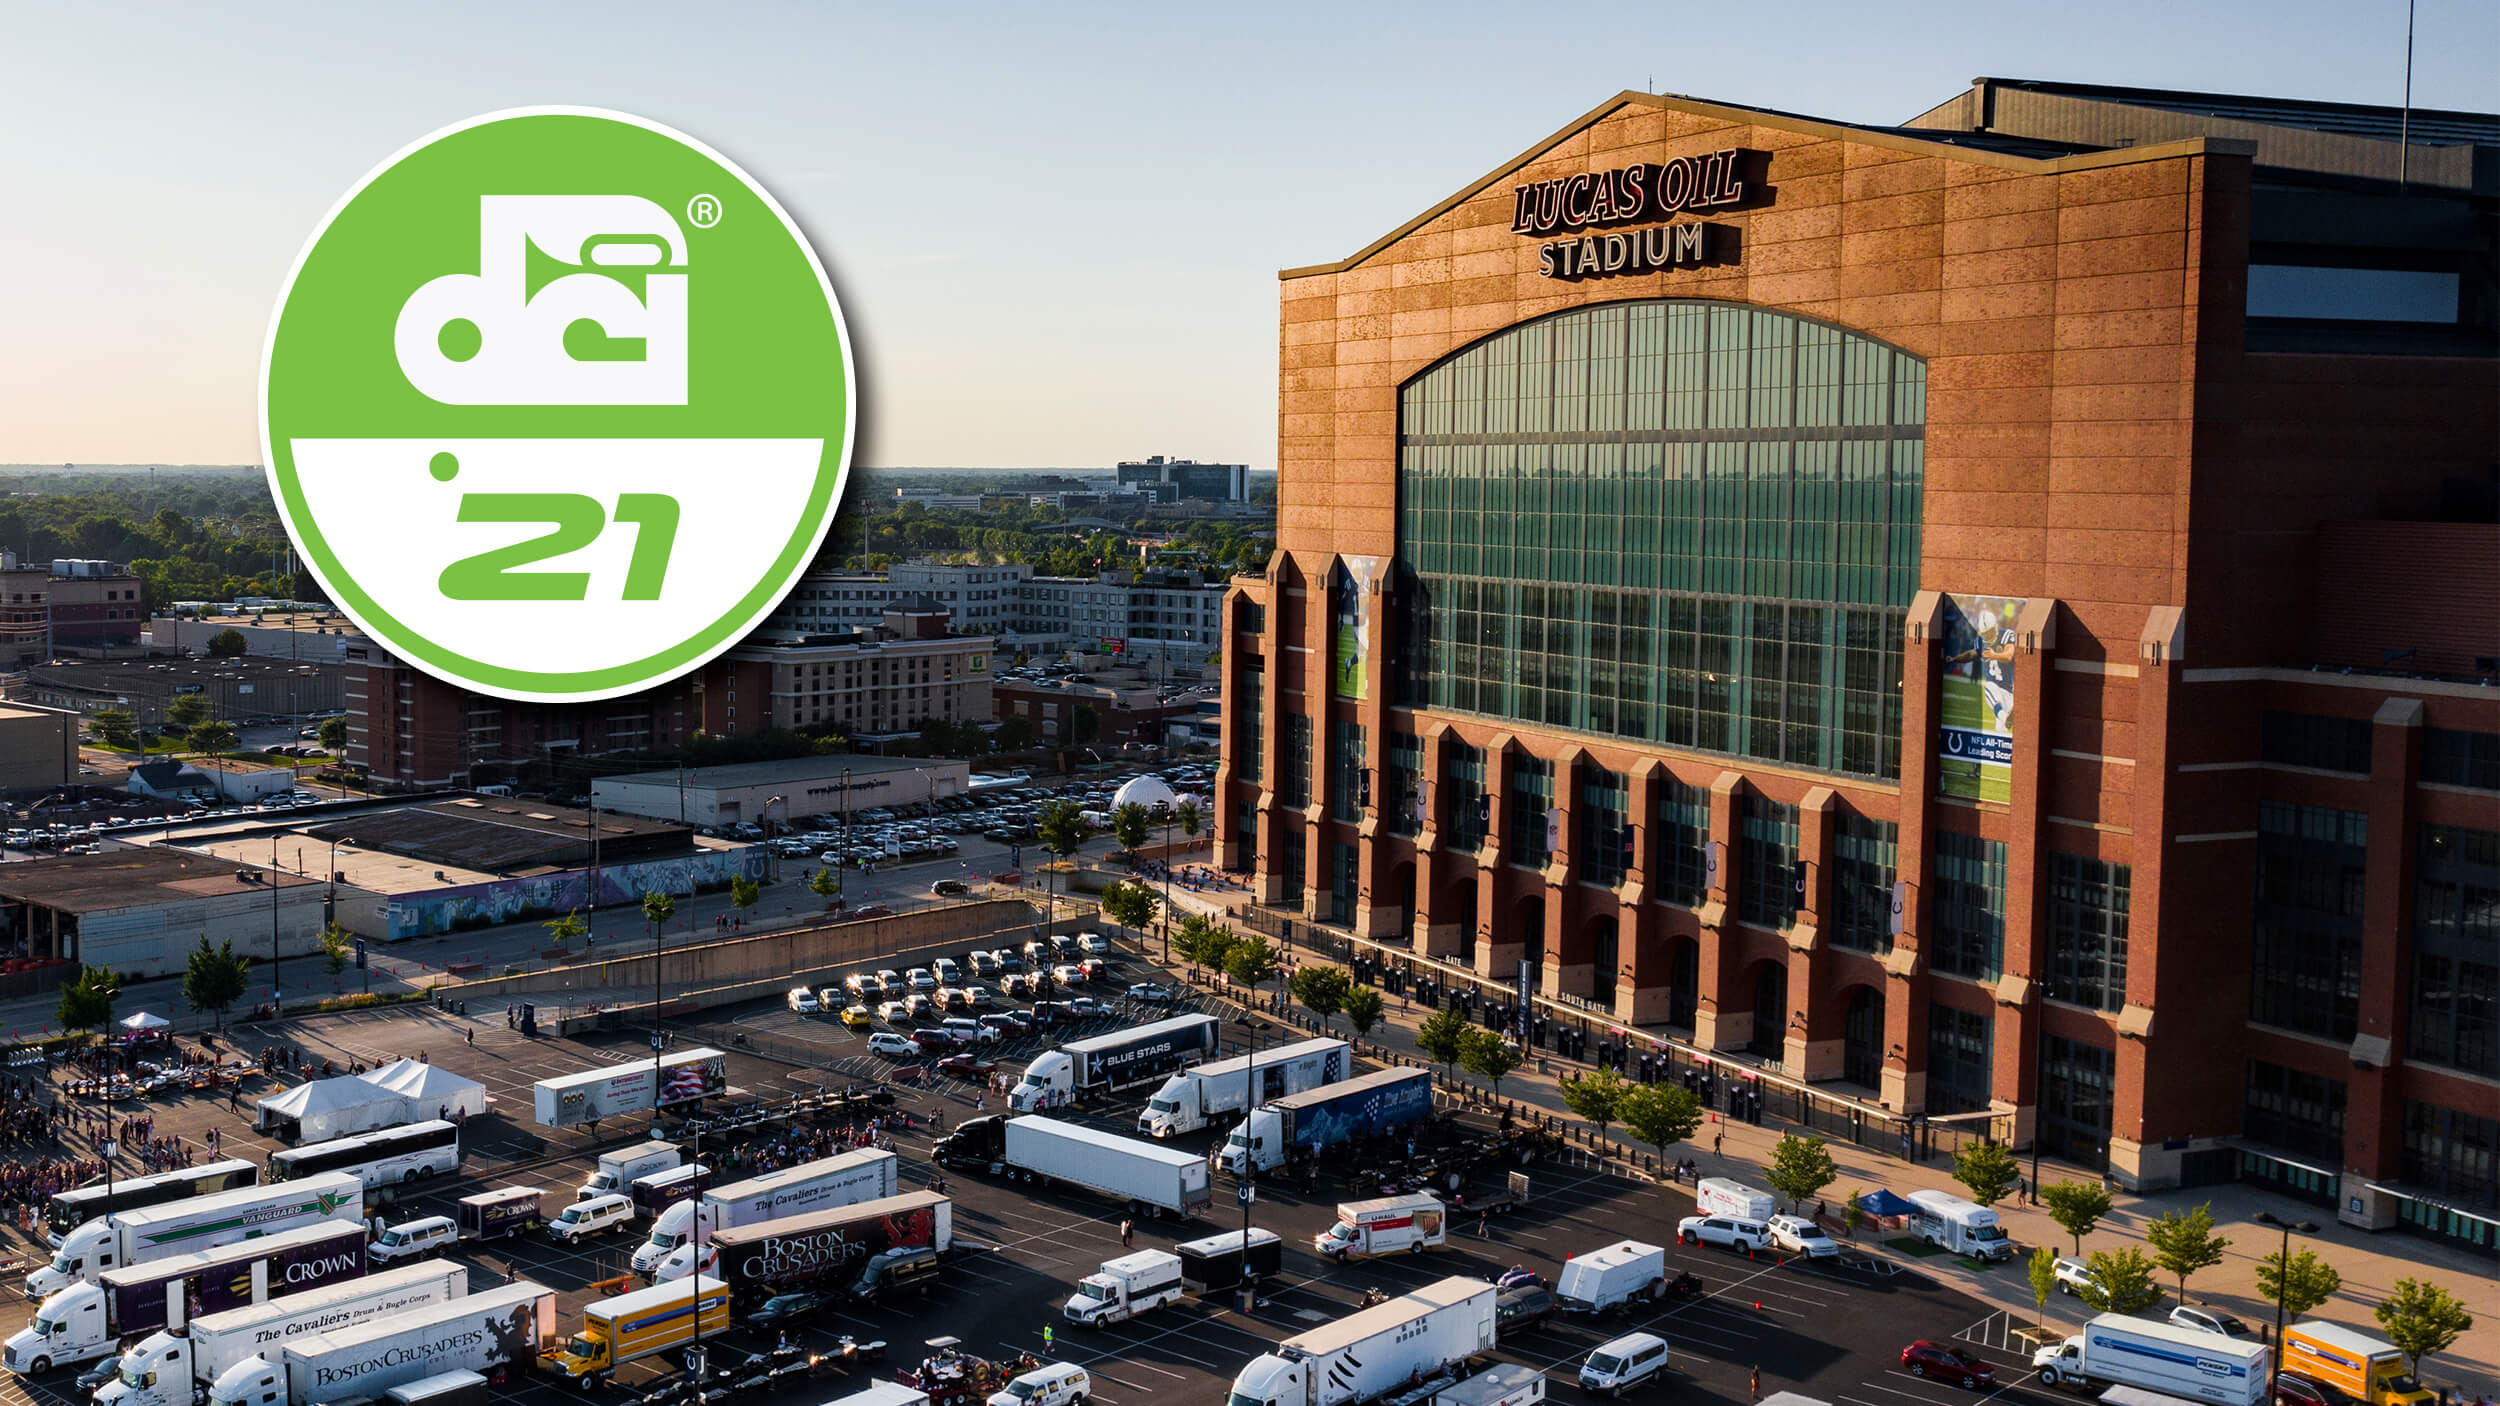 2021 DCI event series slated for Indy in August